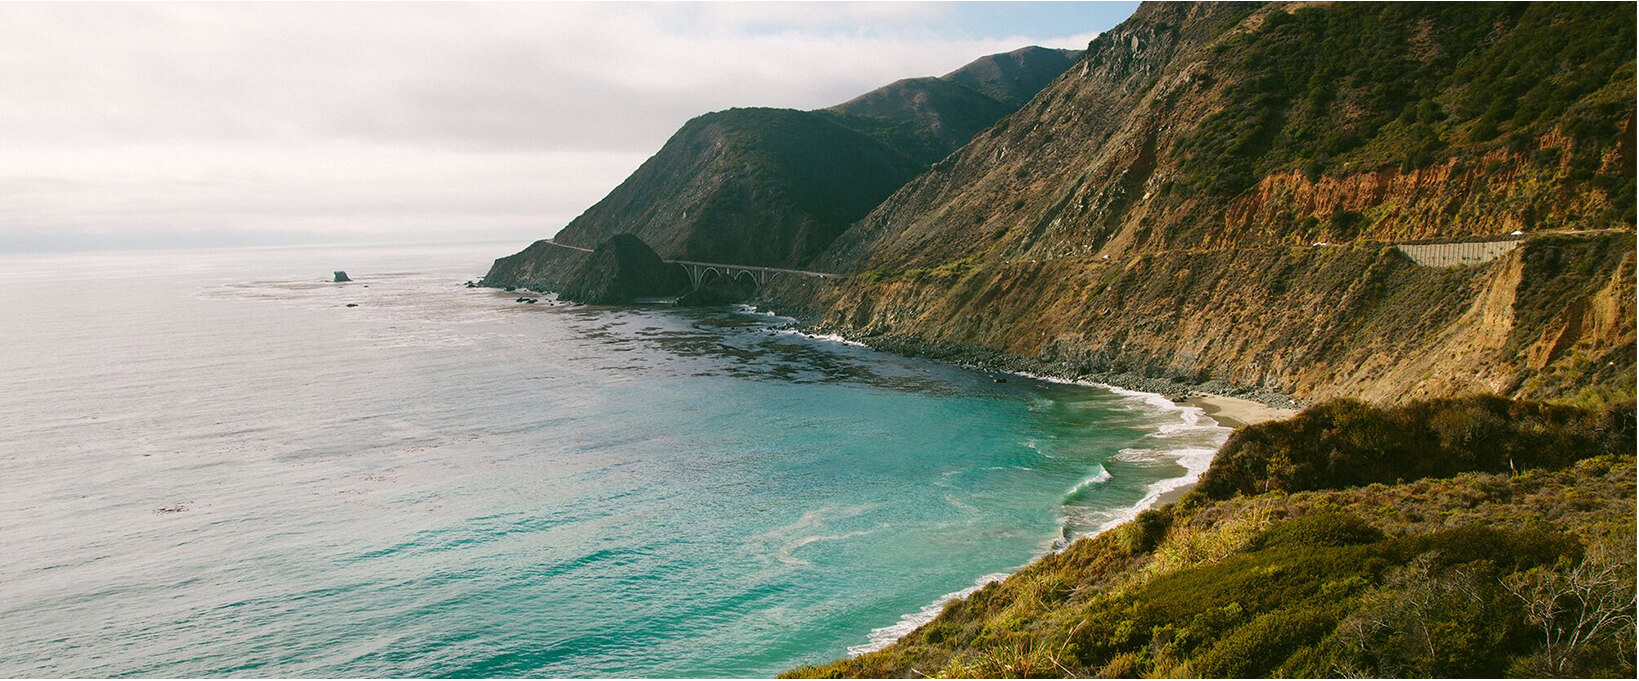 """""""Of all the amazing spots I've visited, Big Sur ranks in the top three. If  you start in Los Angeles, this magical place is a mere five hours by car,  ..."""